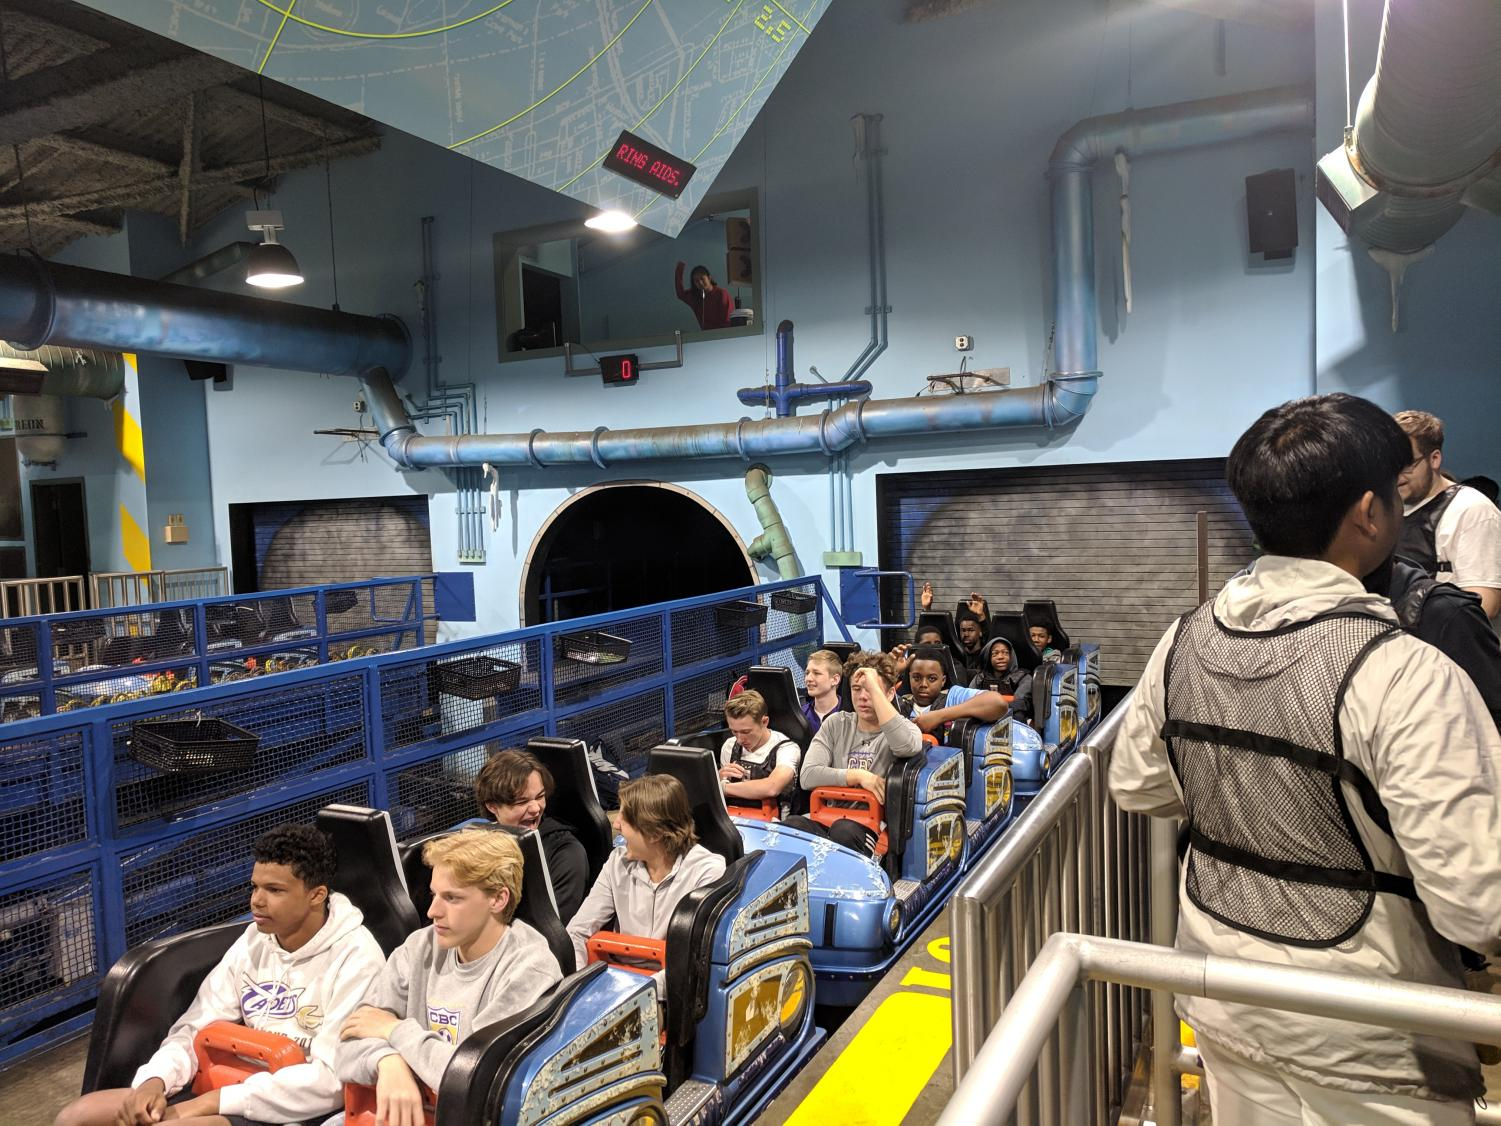 Students get ready to ride Mr. Freeze.